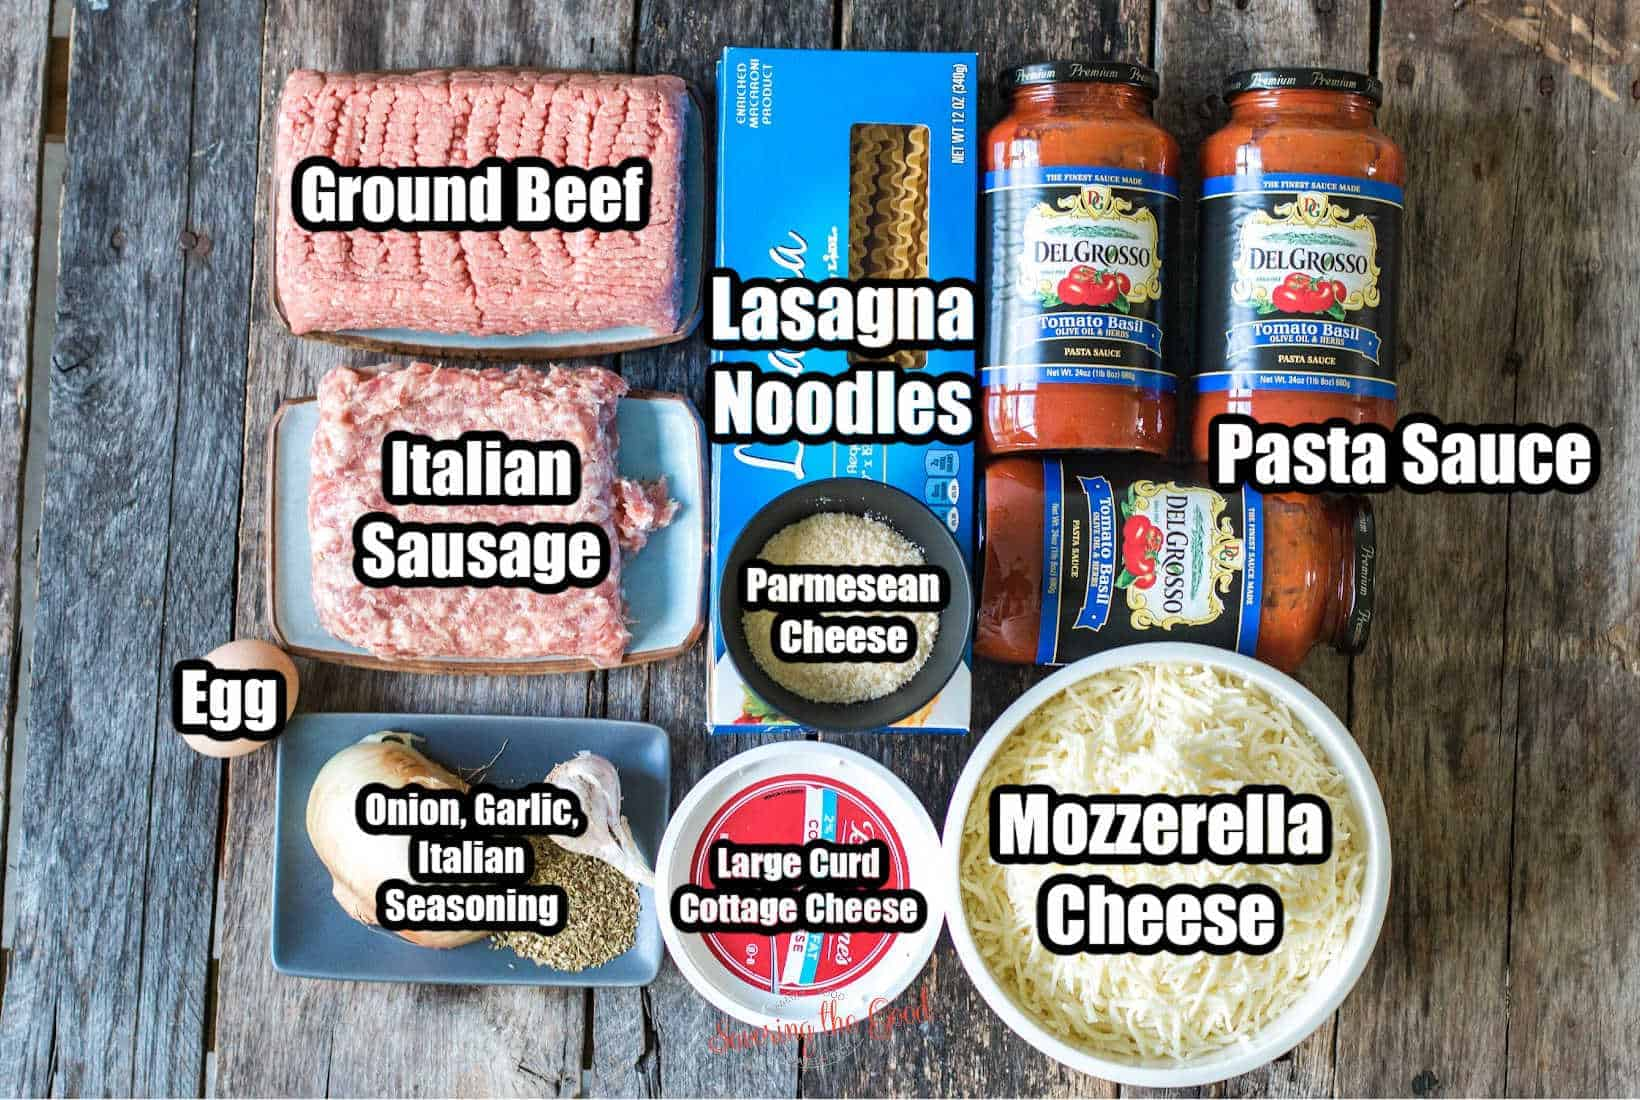 ingredients on a wooden surface, in bowls and on plates, with text overlay labeling the ingredients